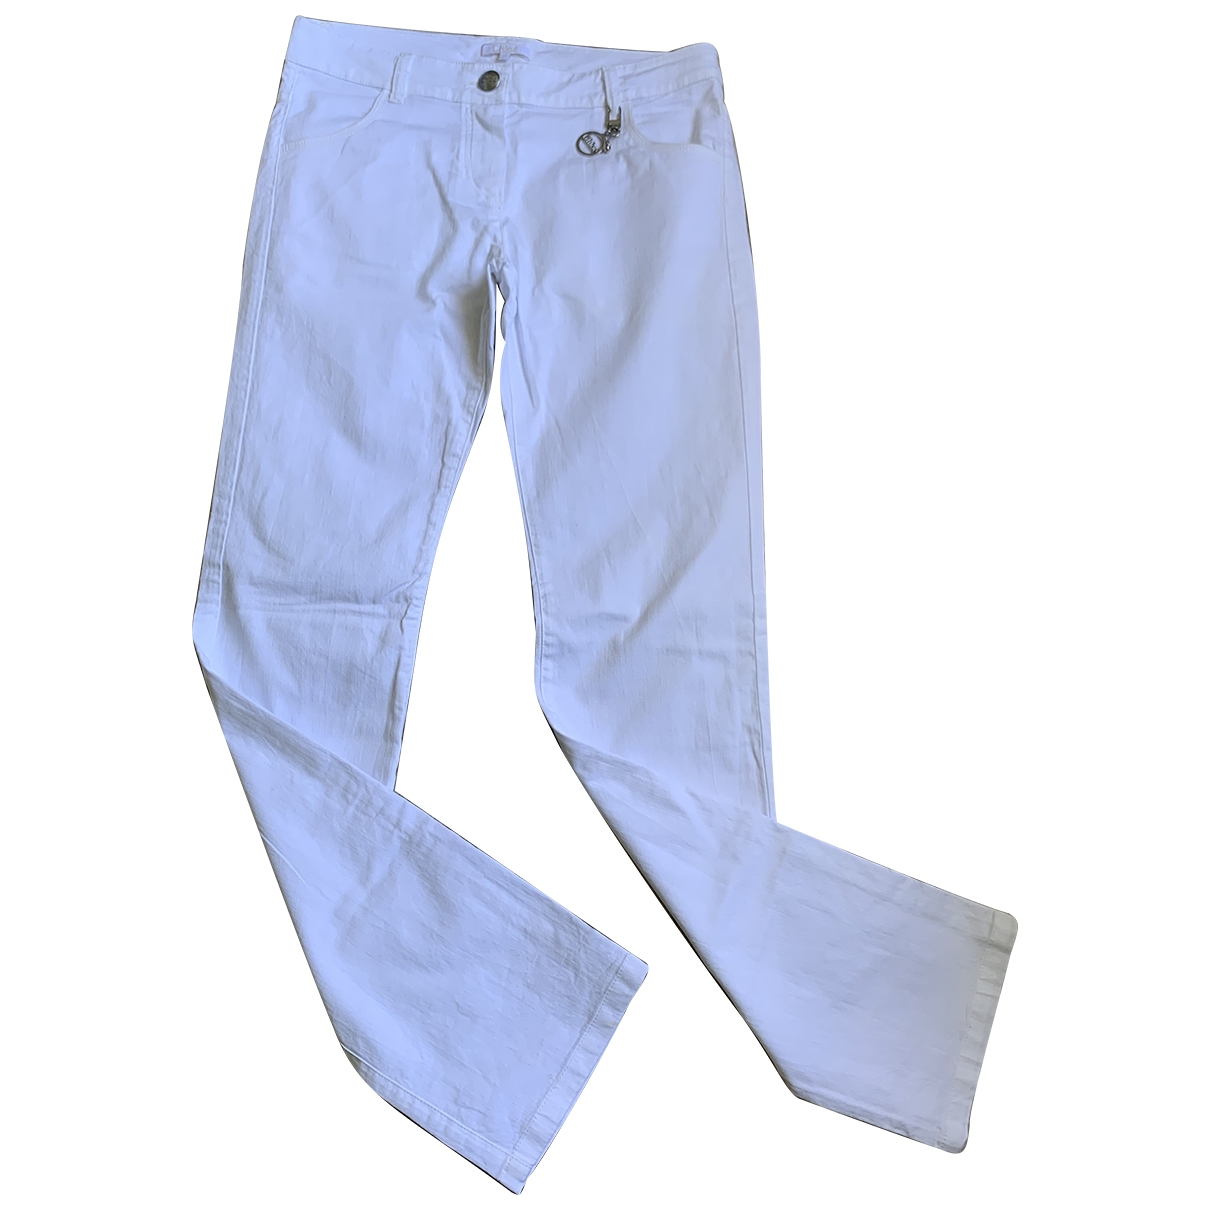 Chlo?? \N White Cotton Trousers for Kids 14 years - S FR